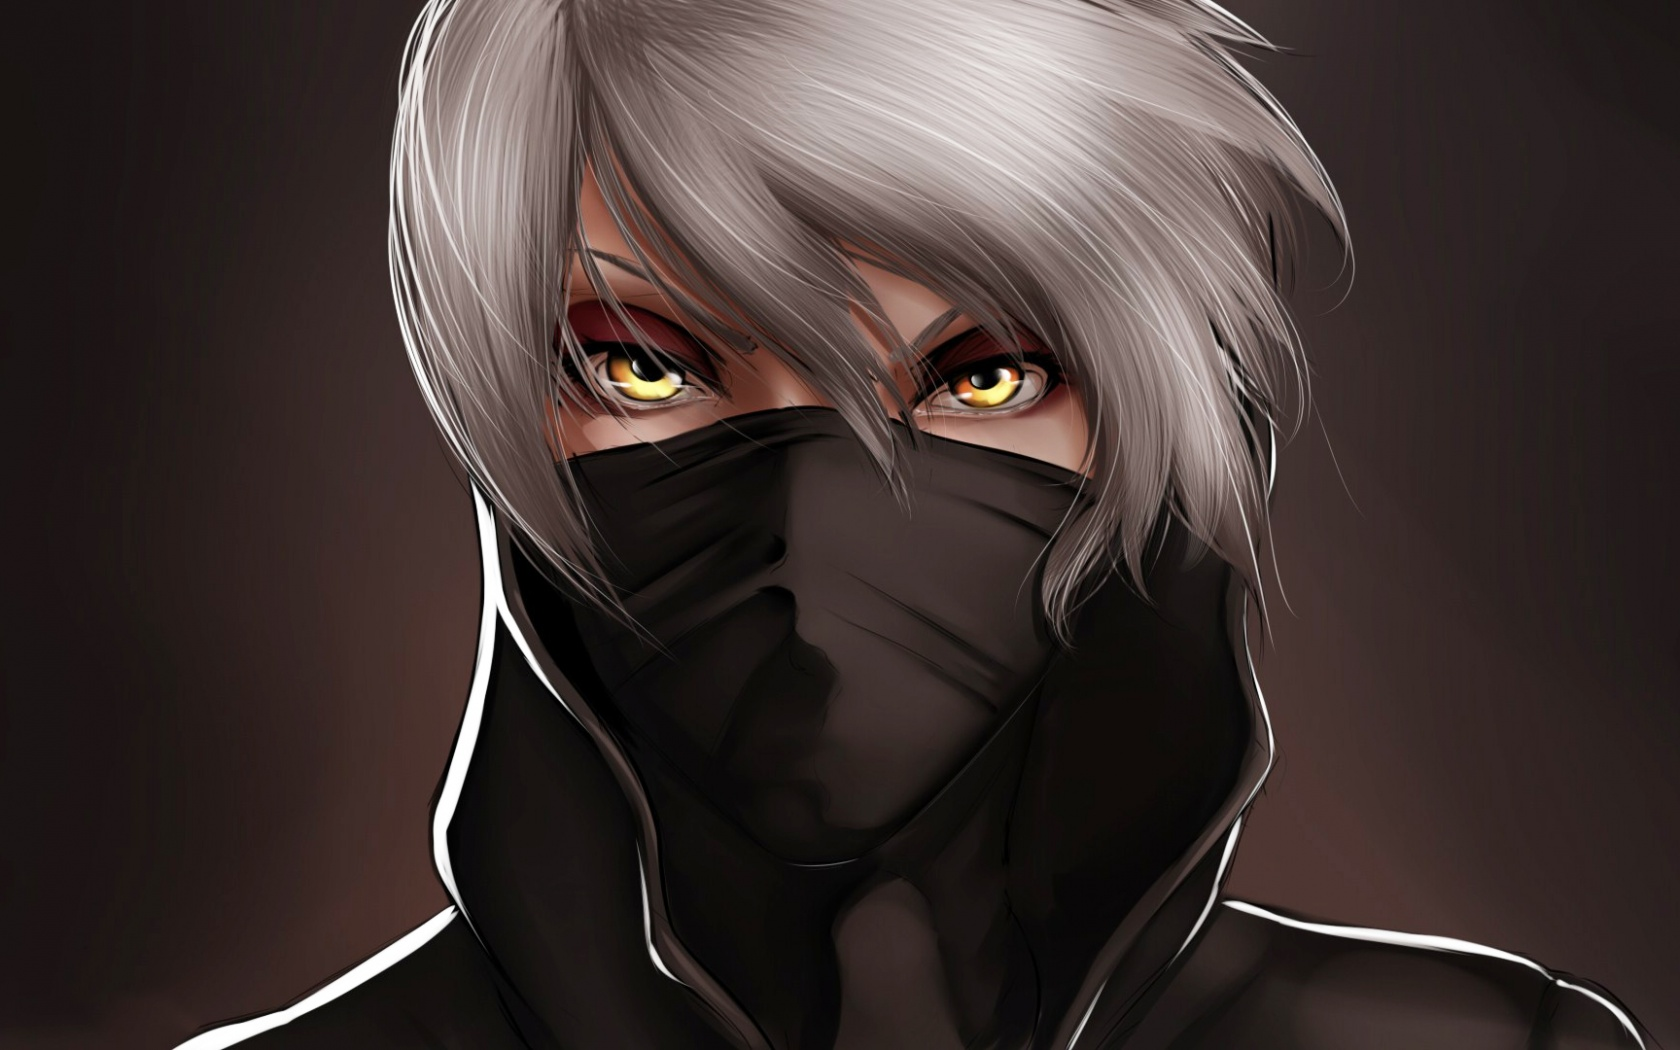 Mind Blowing Anime Cool Boy Wallpaper Te Images About   Anime Guy 1680x1050